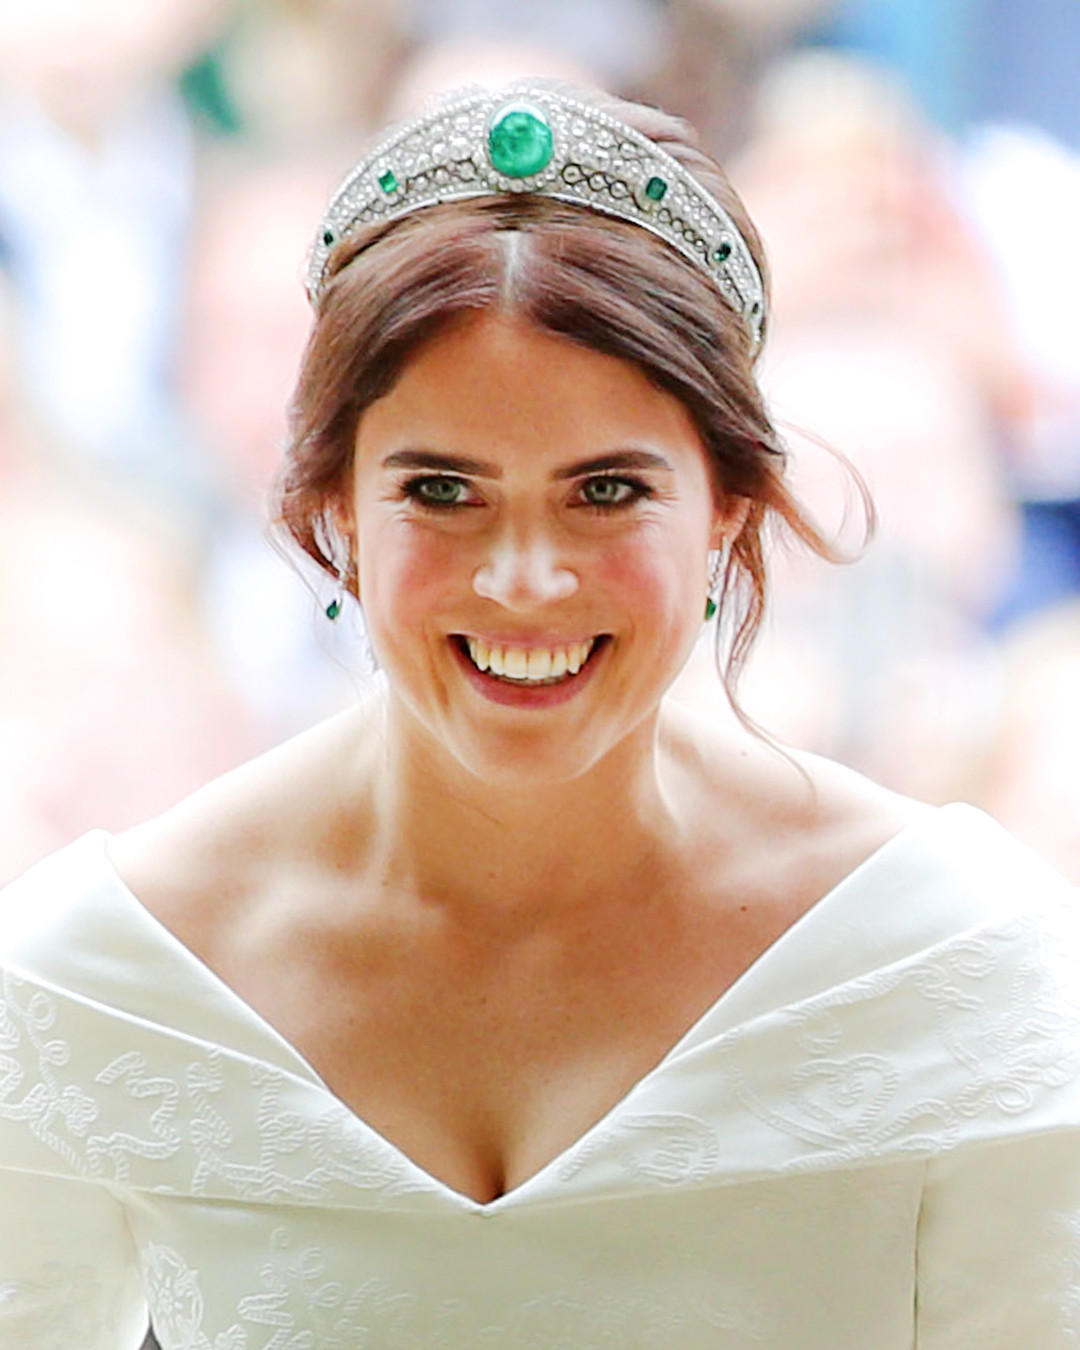 St George Auto >> Princess Eugenie's Wedding Makeup Is Royally Beautiful | E! News